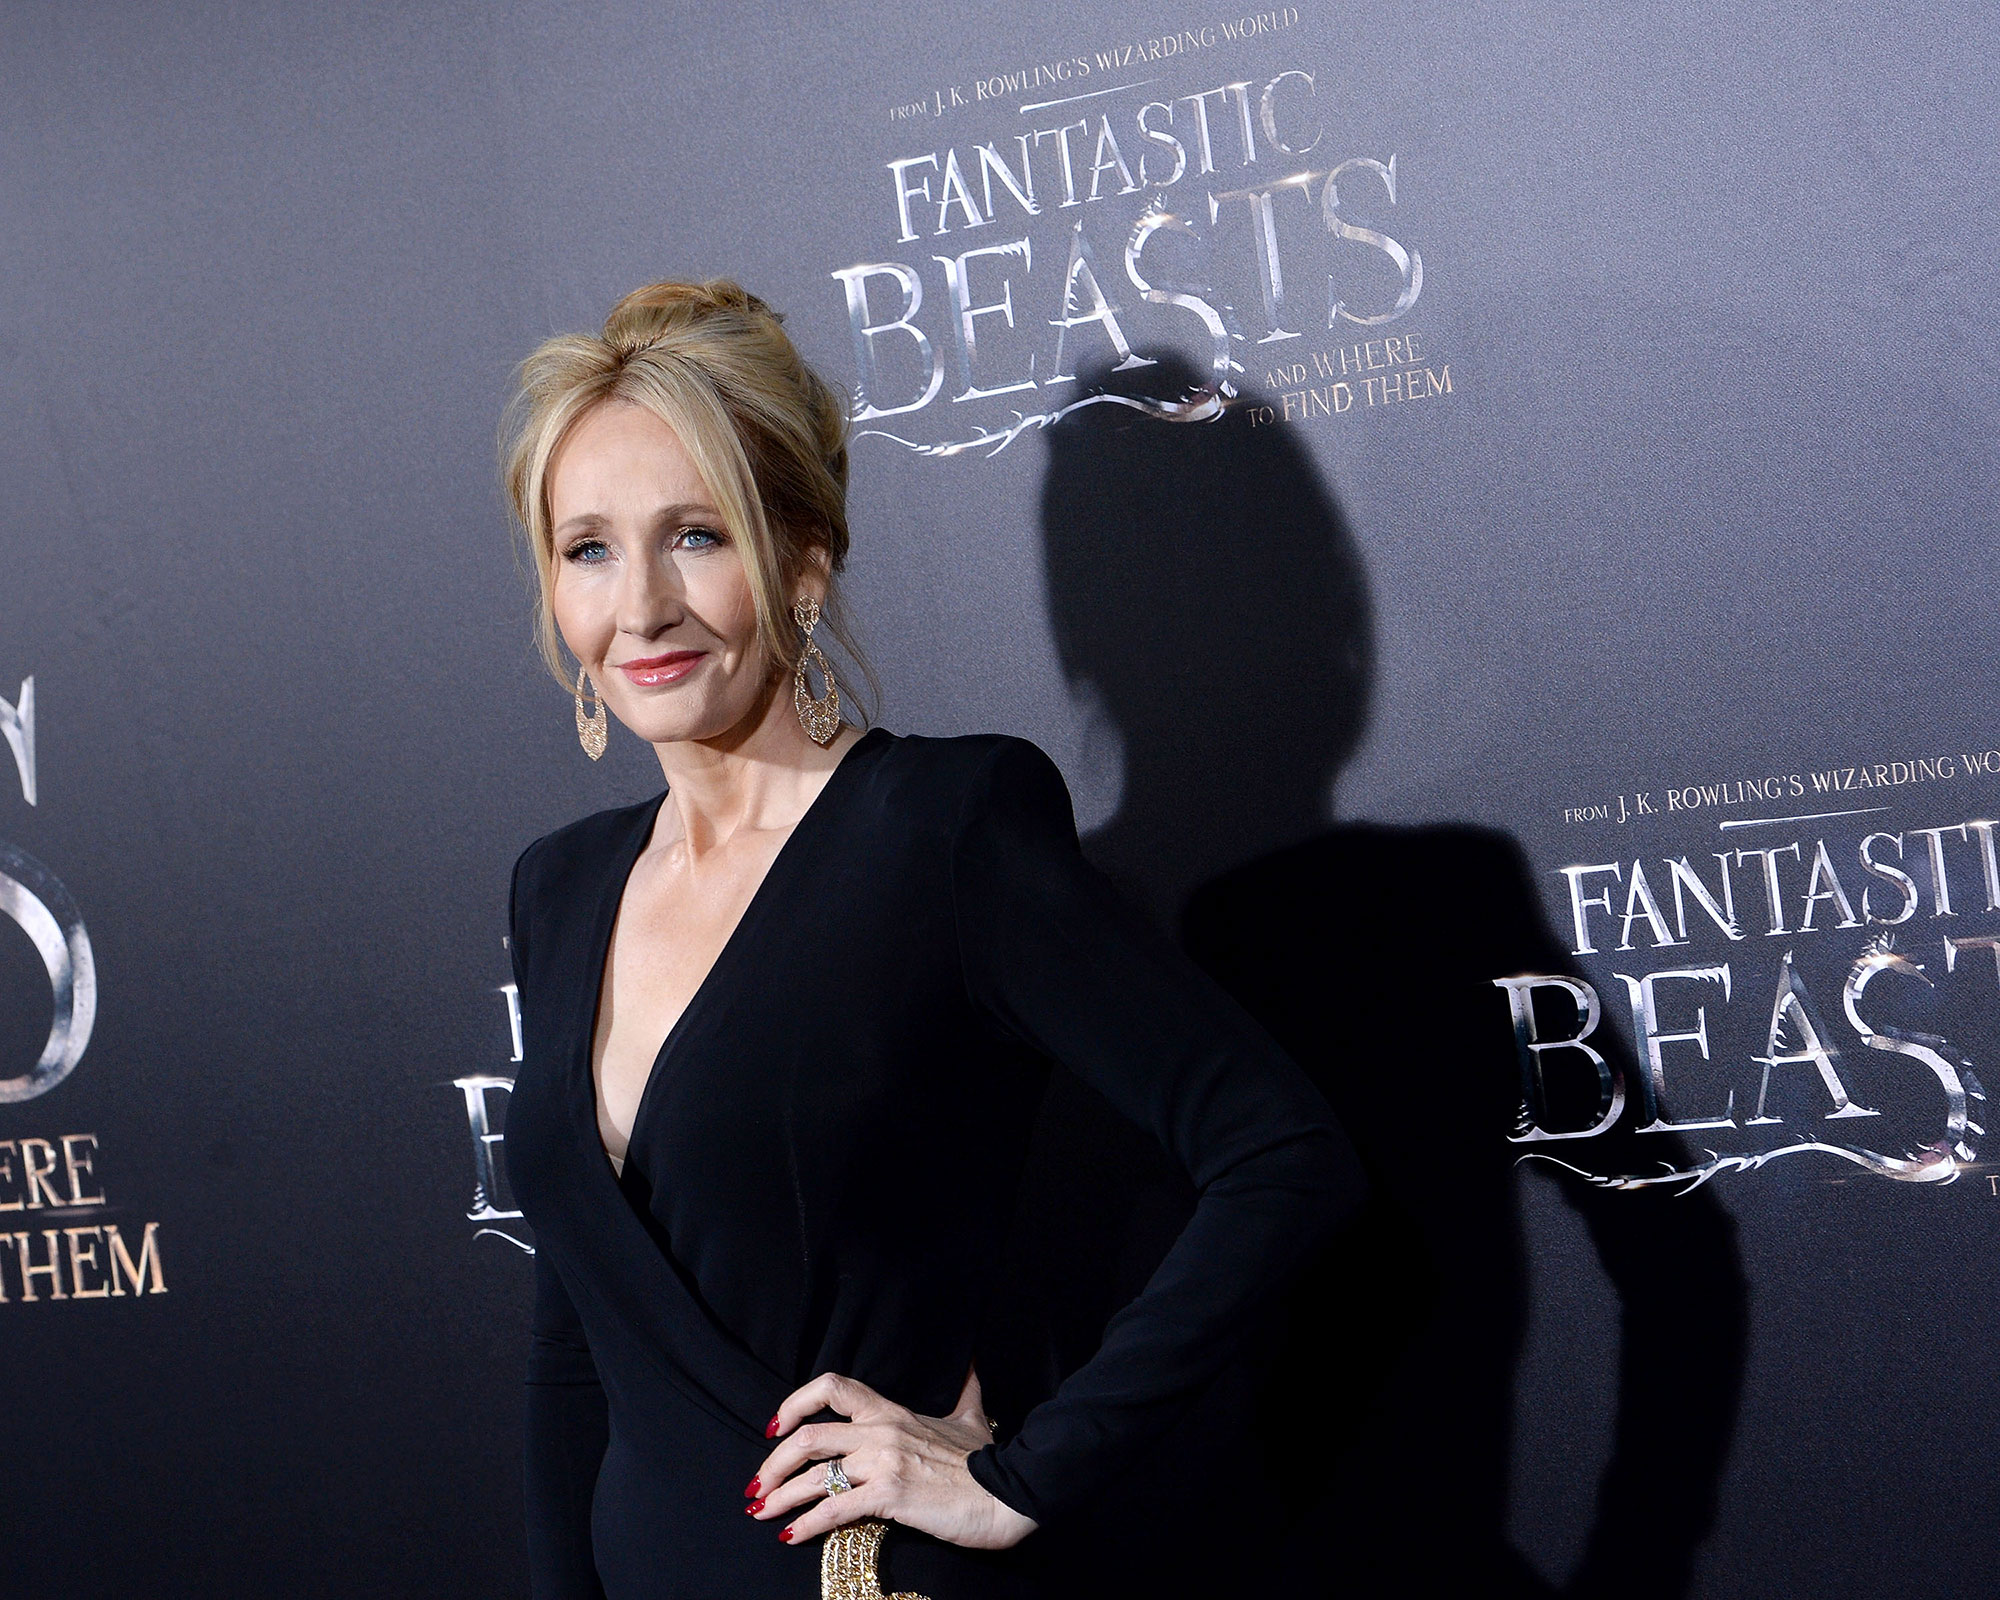 J.K. Rowling Teachers Before Fame - Before she started writing the Harry Potter book series, Rowling moved to Porto, Portugal, to teach English. It was there that she honed in on her love for storytelling and came up with the magical world that would eventually become a billion-dollar empire.